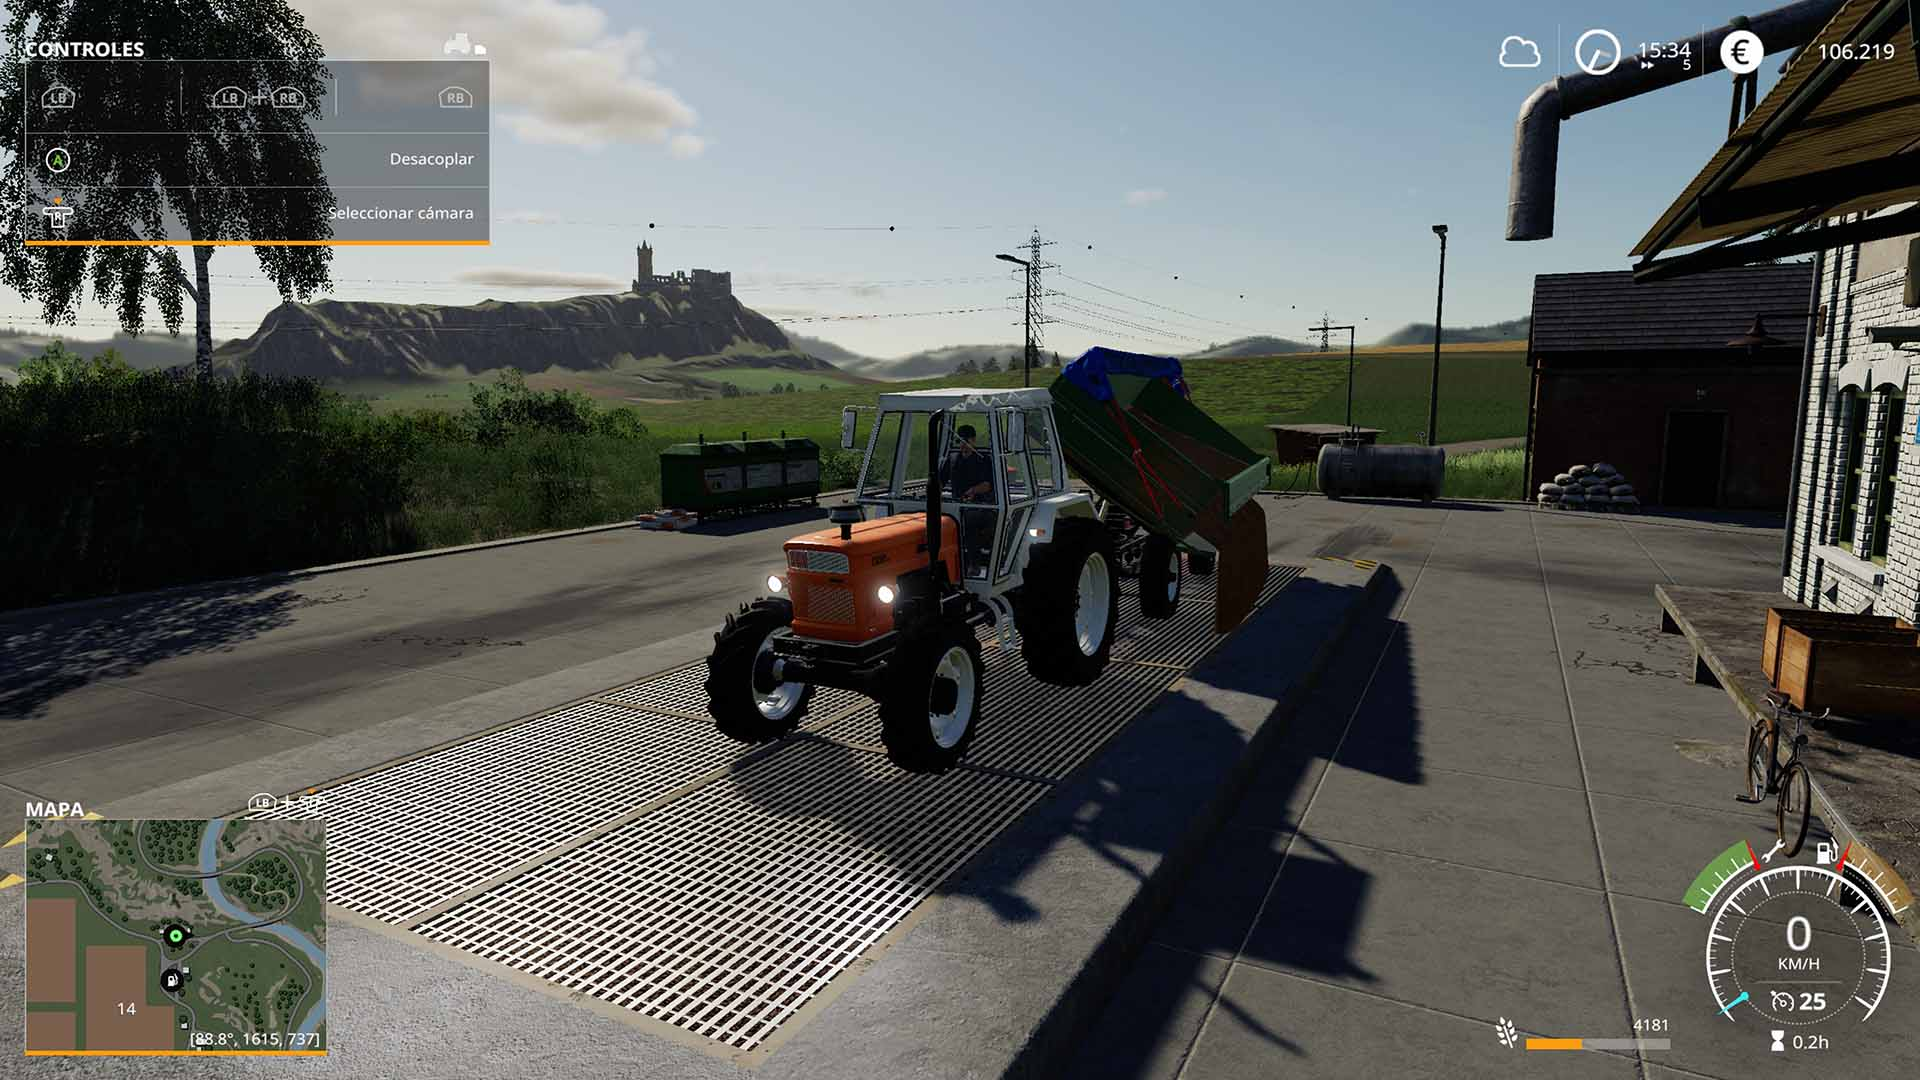 Hacks for farming simulator 17 xbox one | Farming Simulator